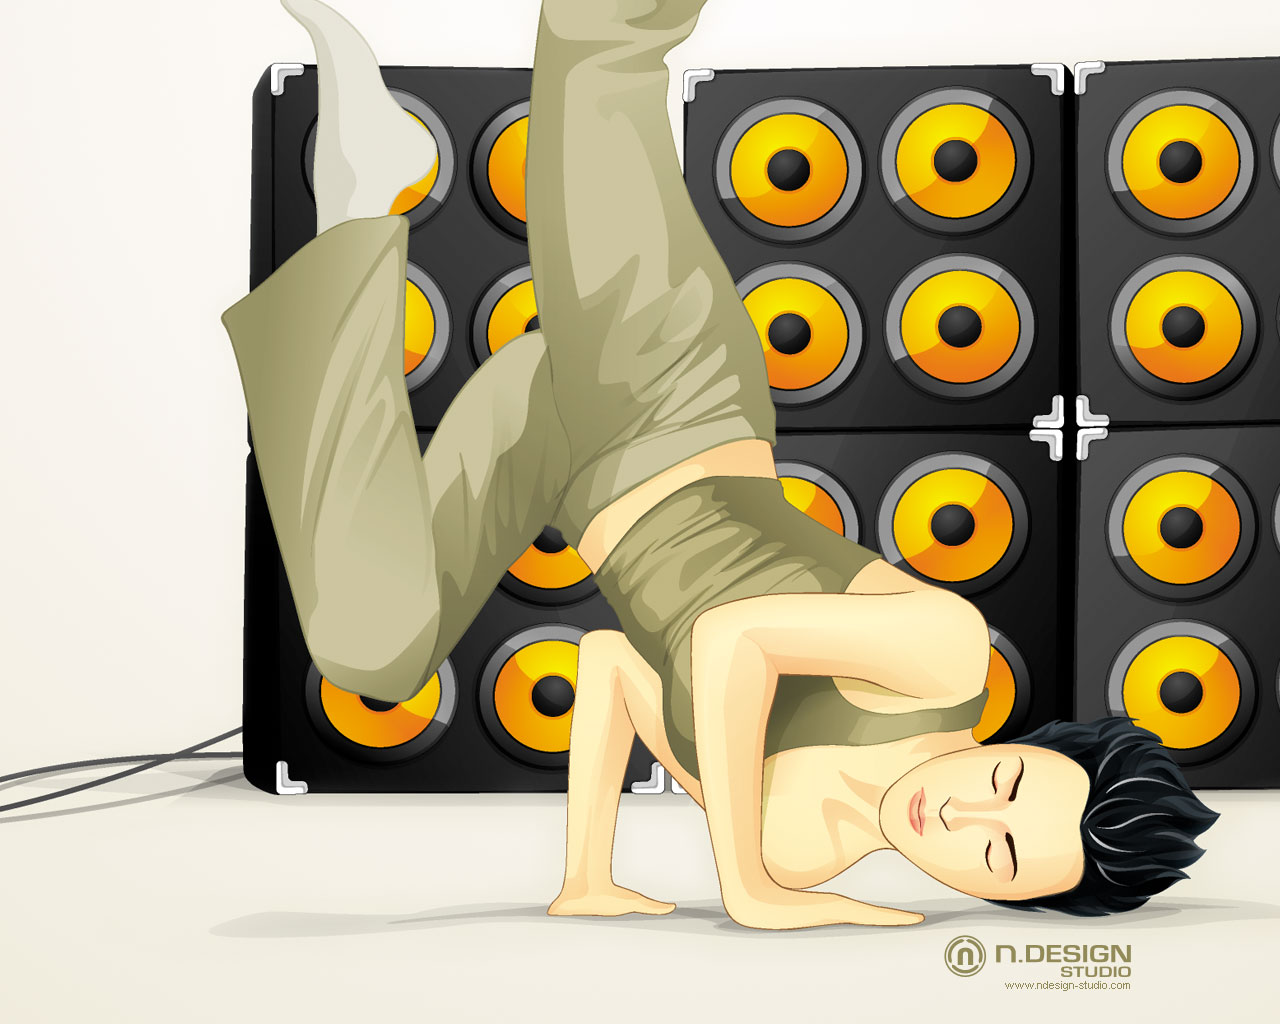 1280 Hip Hop style desktop wallpapers and stock photos